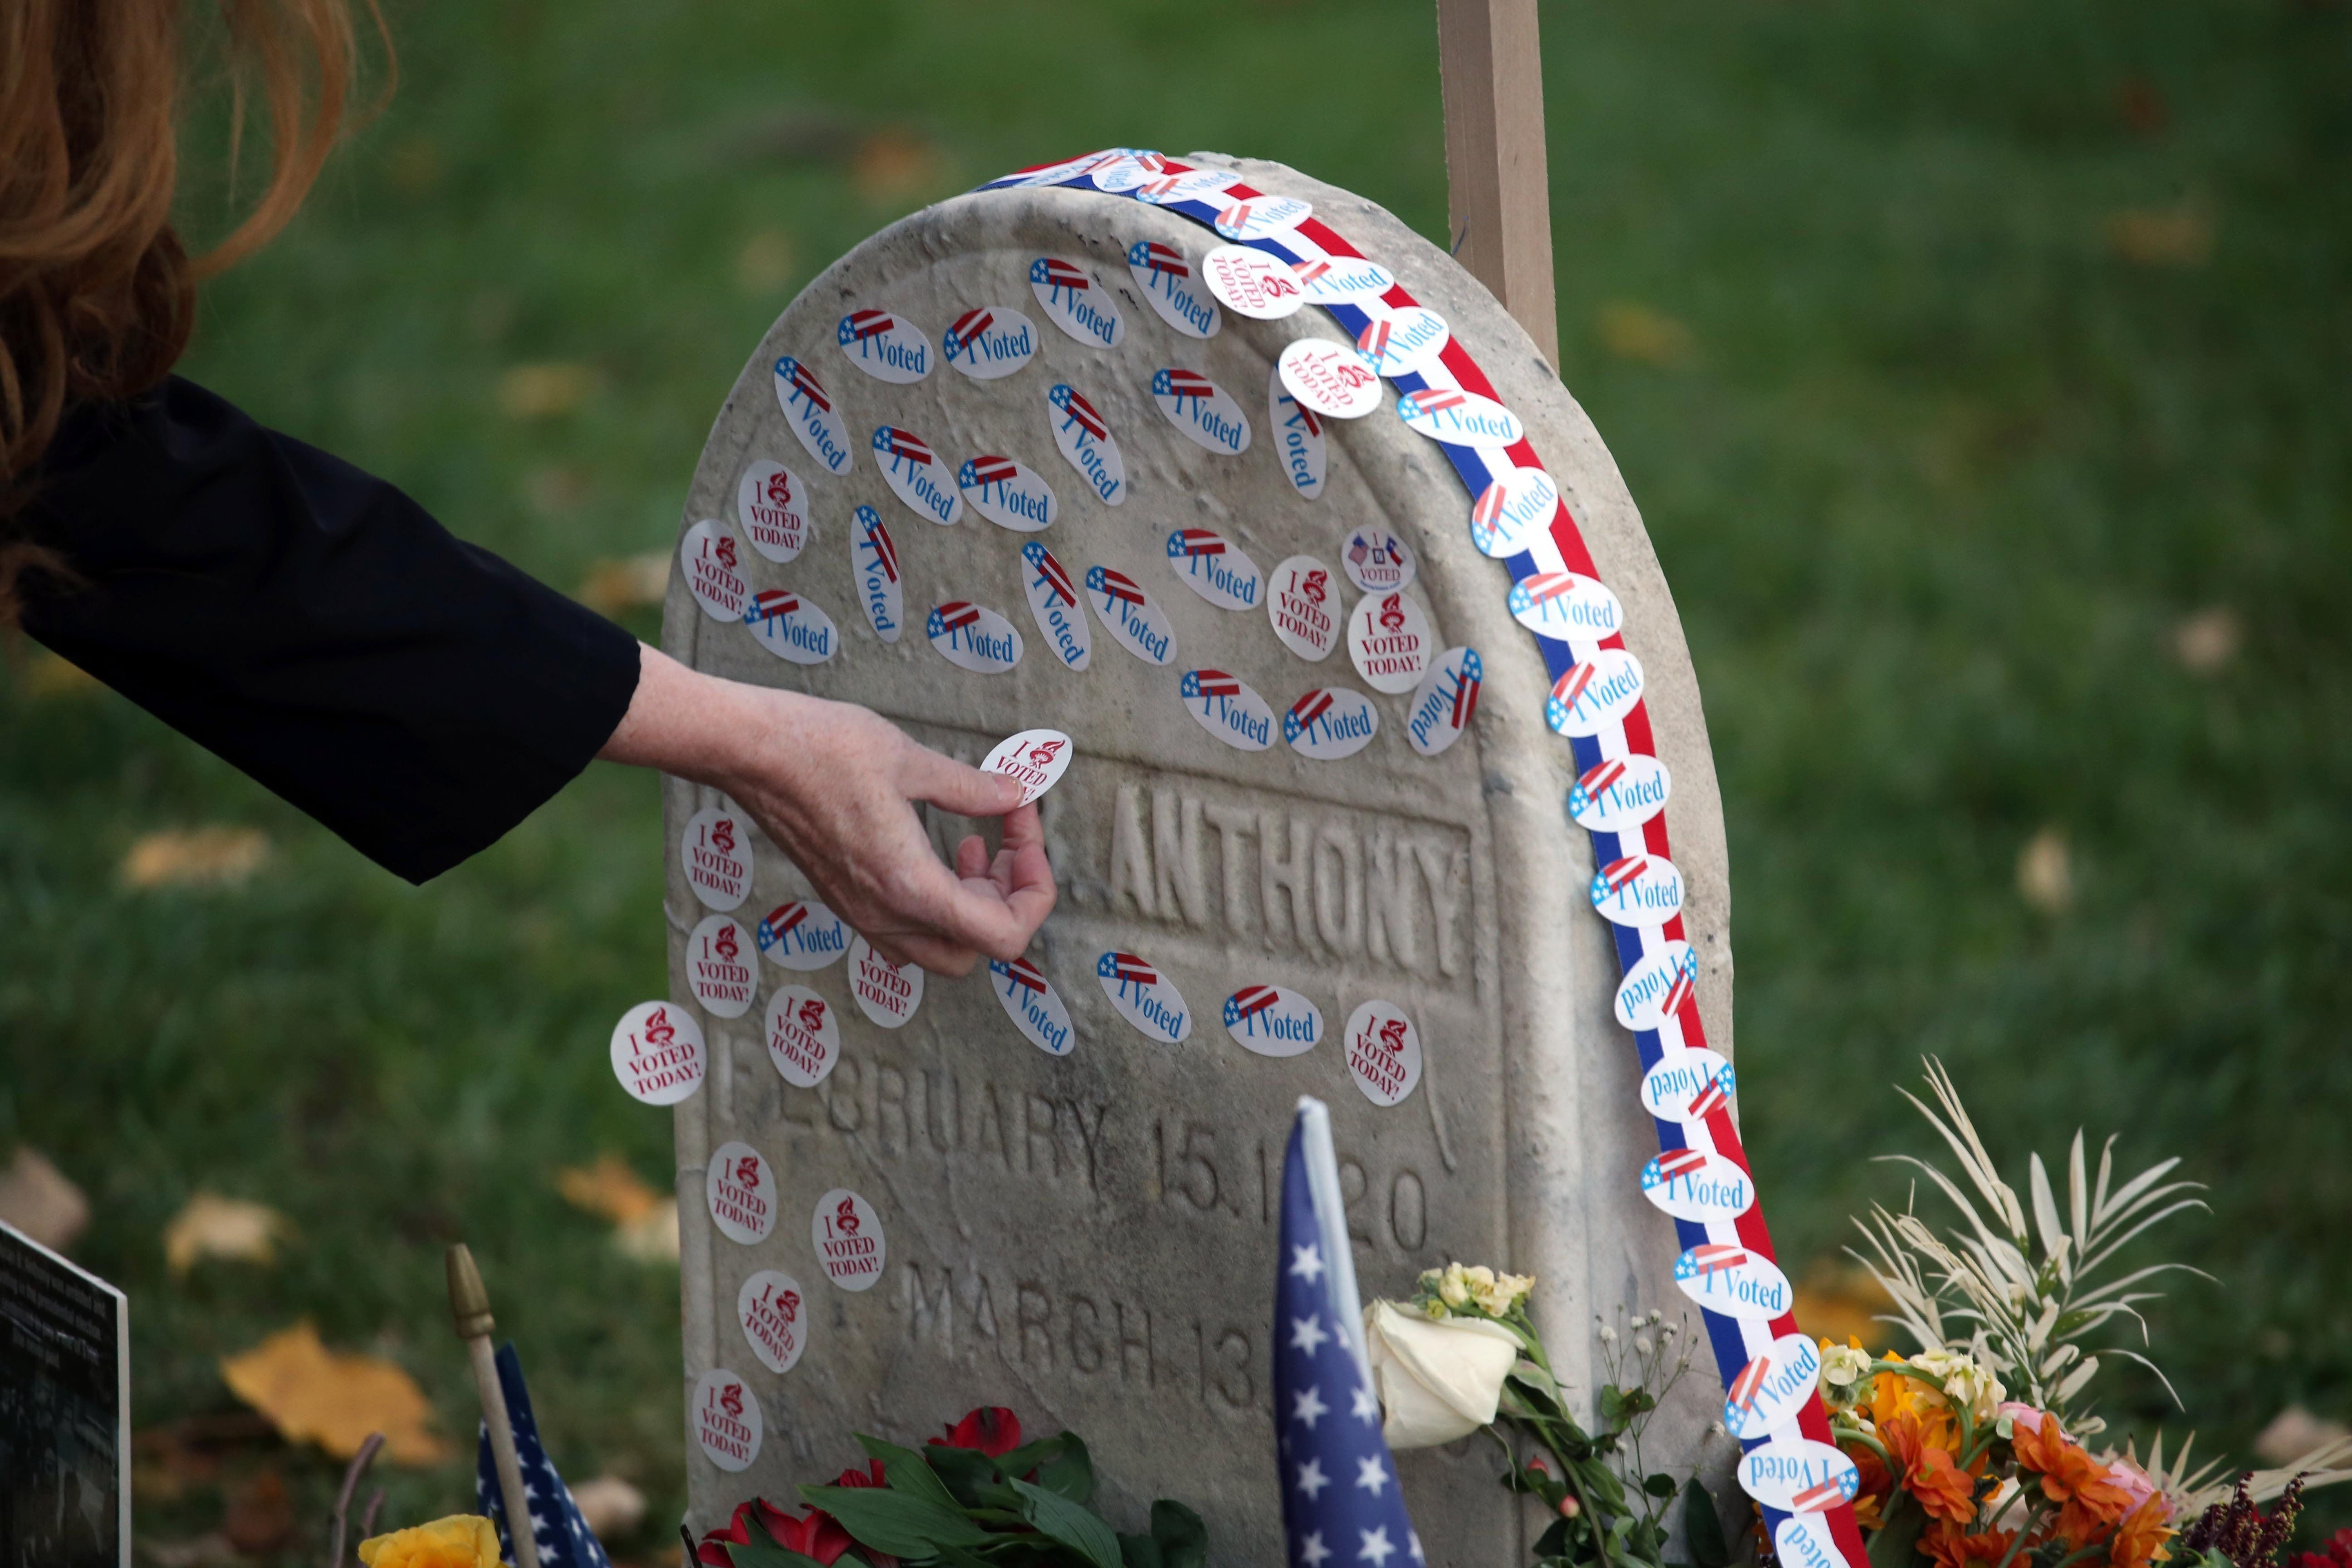 Women Are Placing Their 'I Voted' Stickers On Susan B. Anthony's